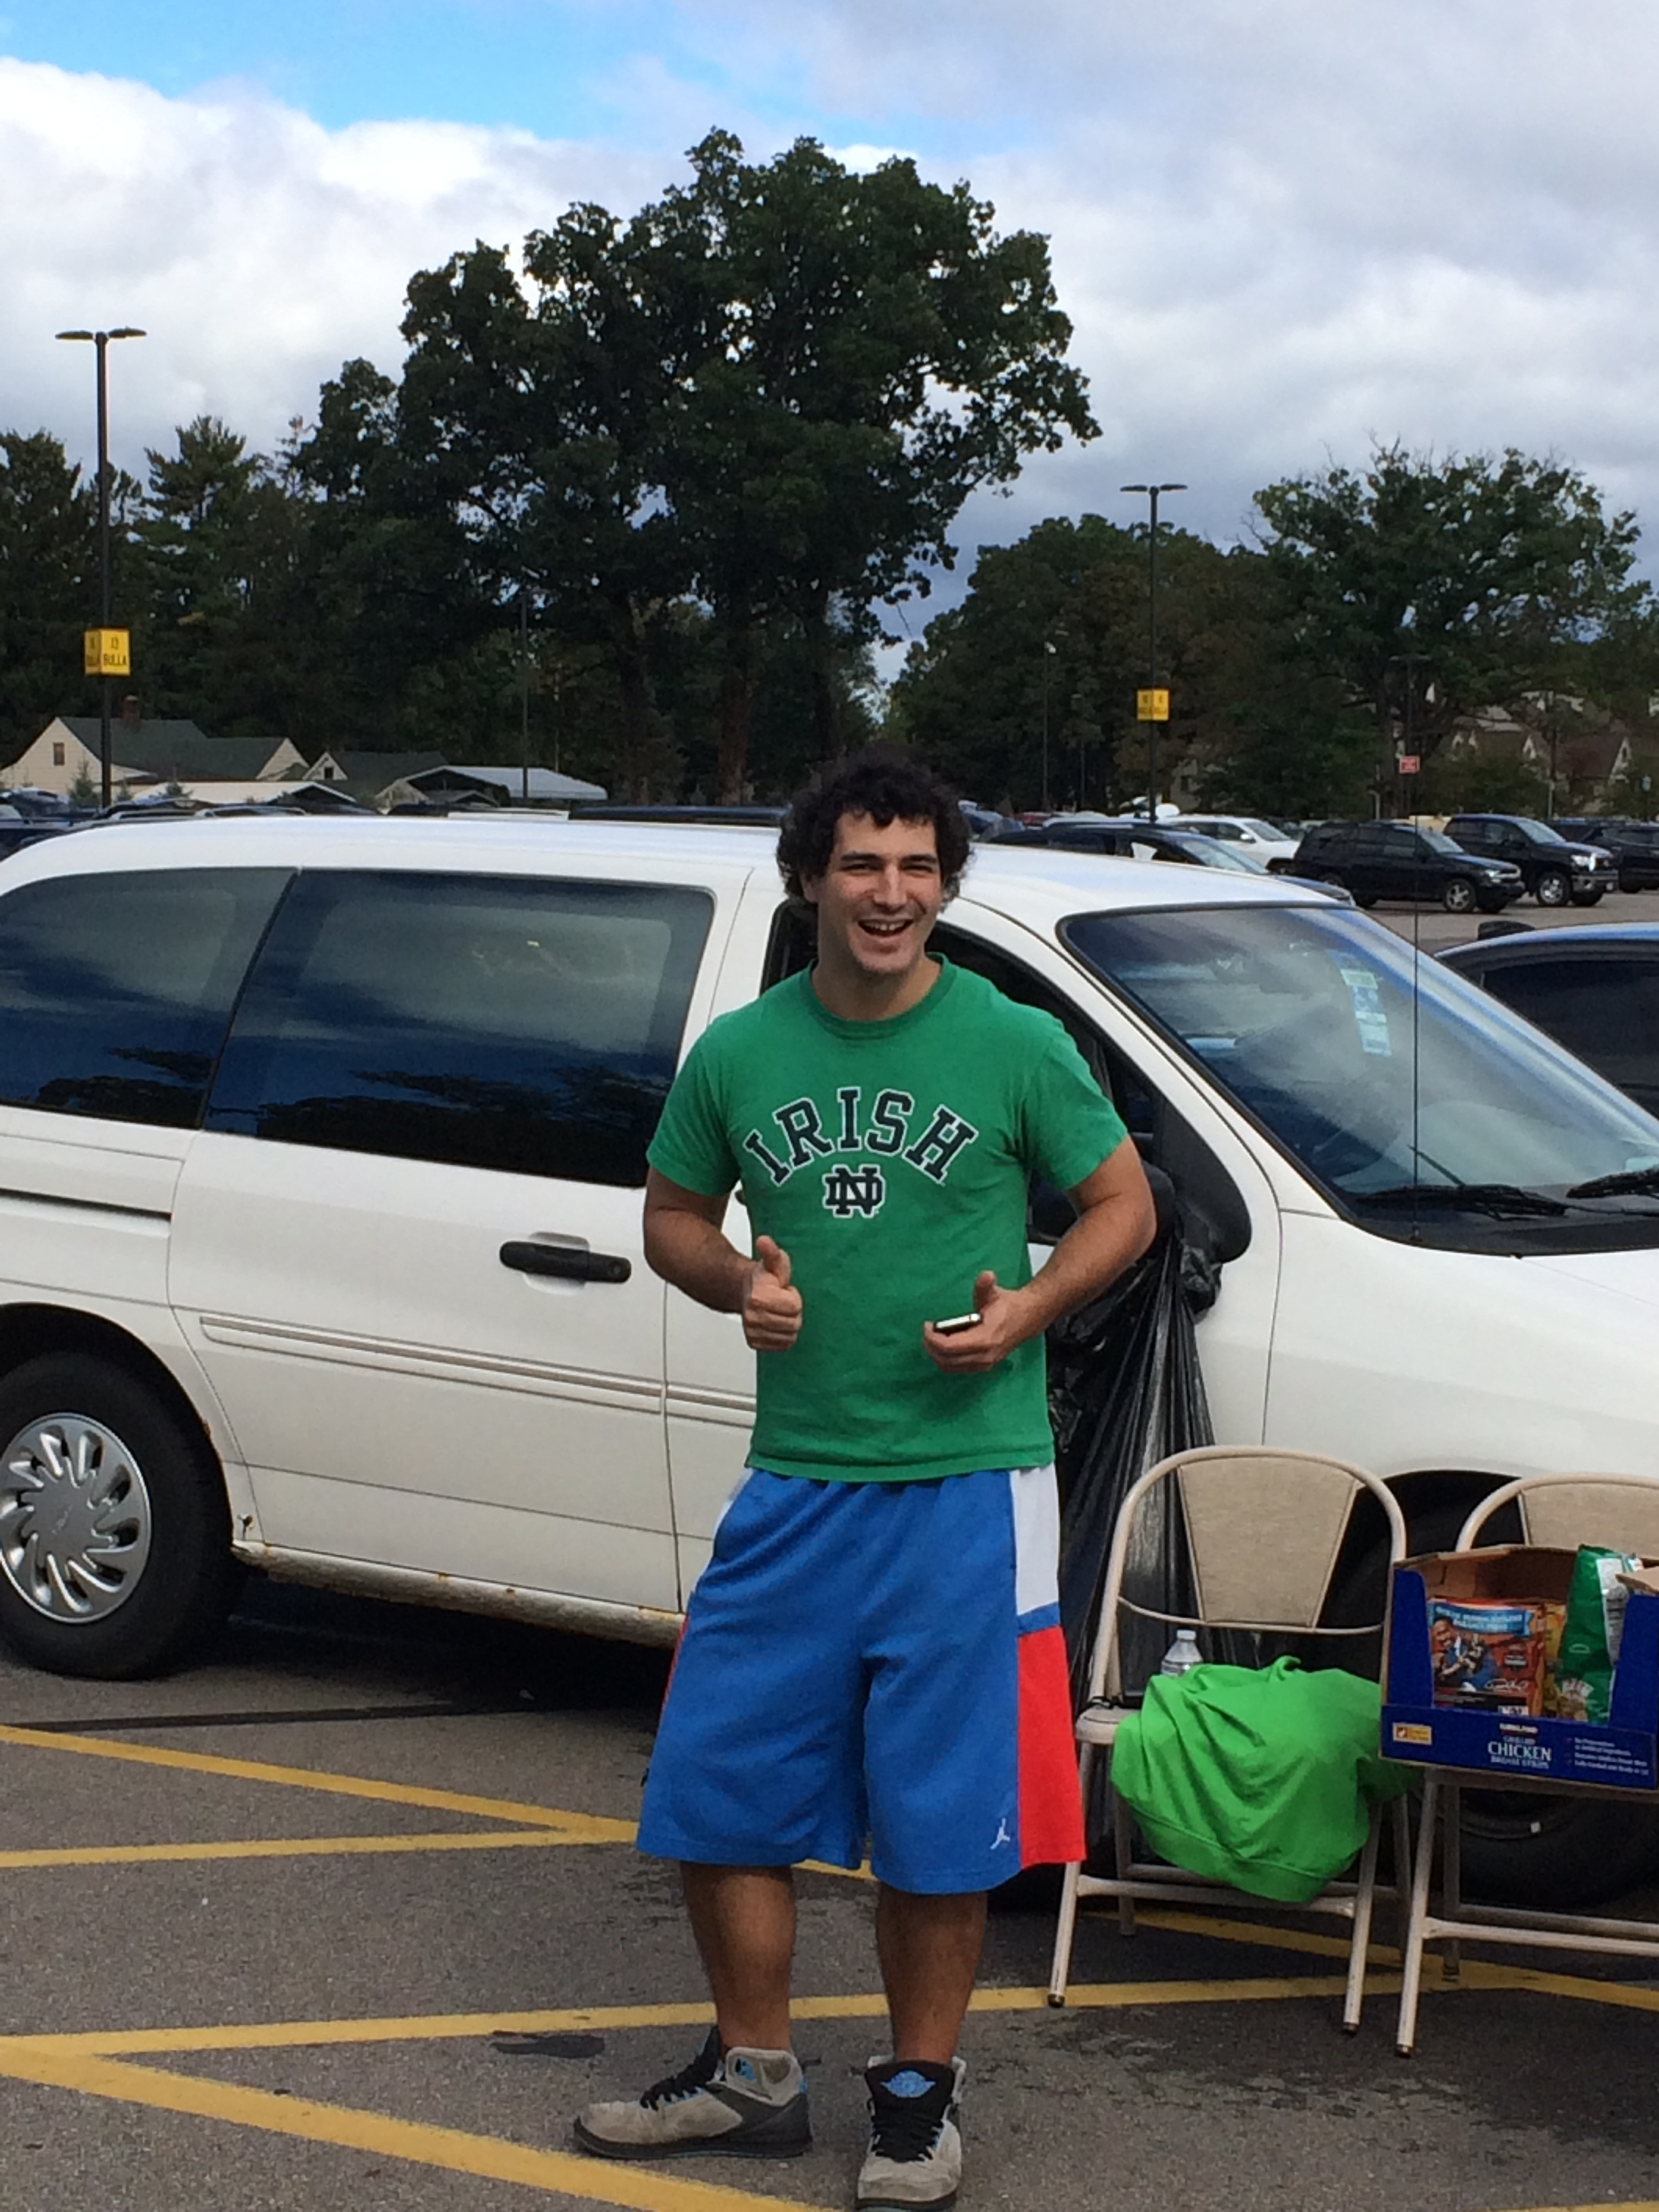 Dillon tailgating at Notre Dame in South Bend. Go Irish!